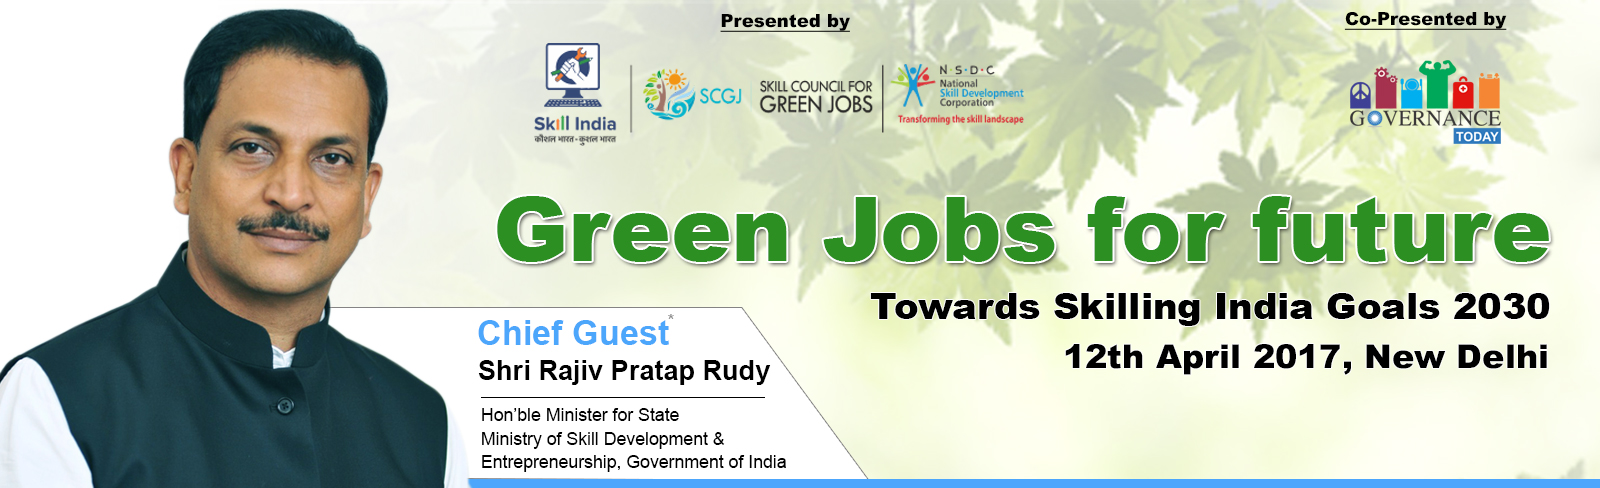 Green Jobs for Future